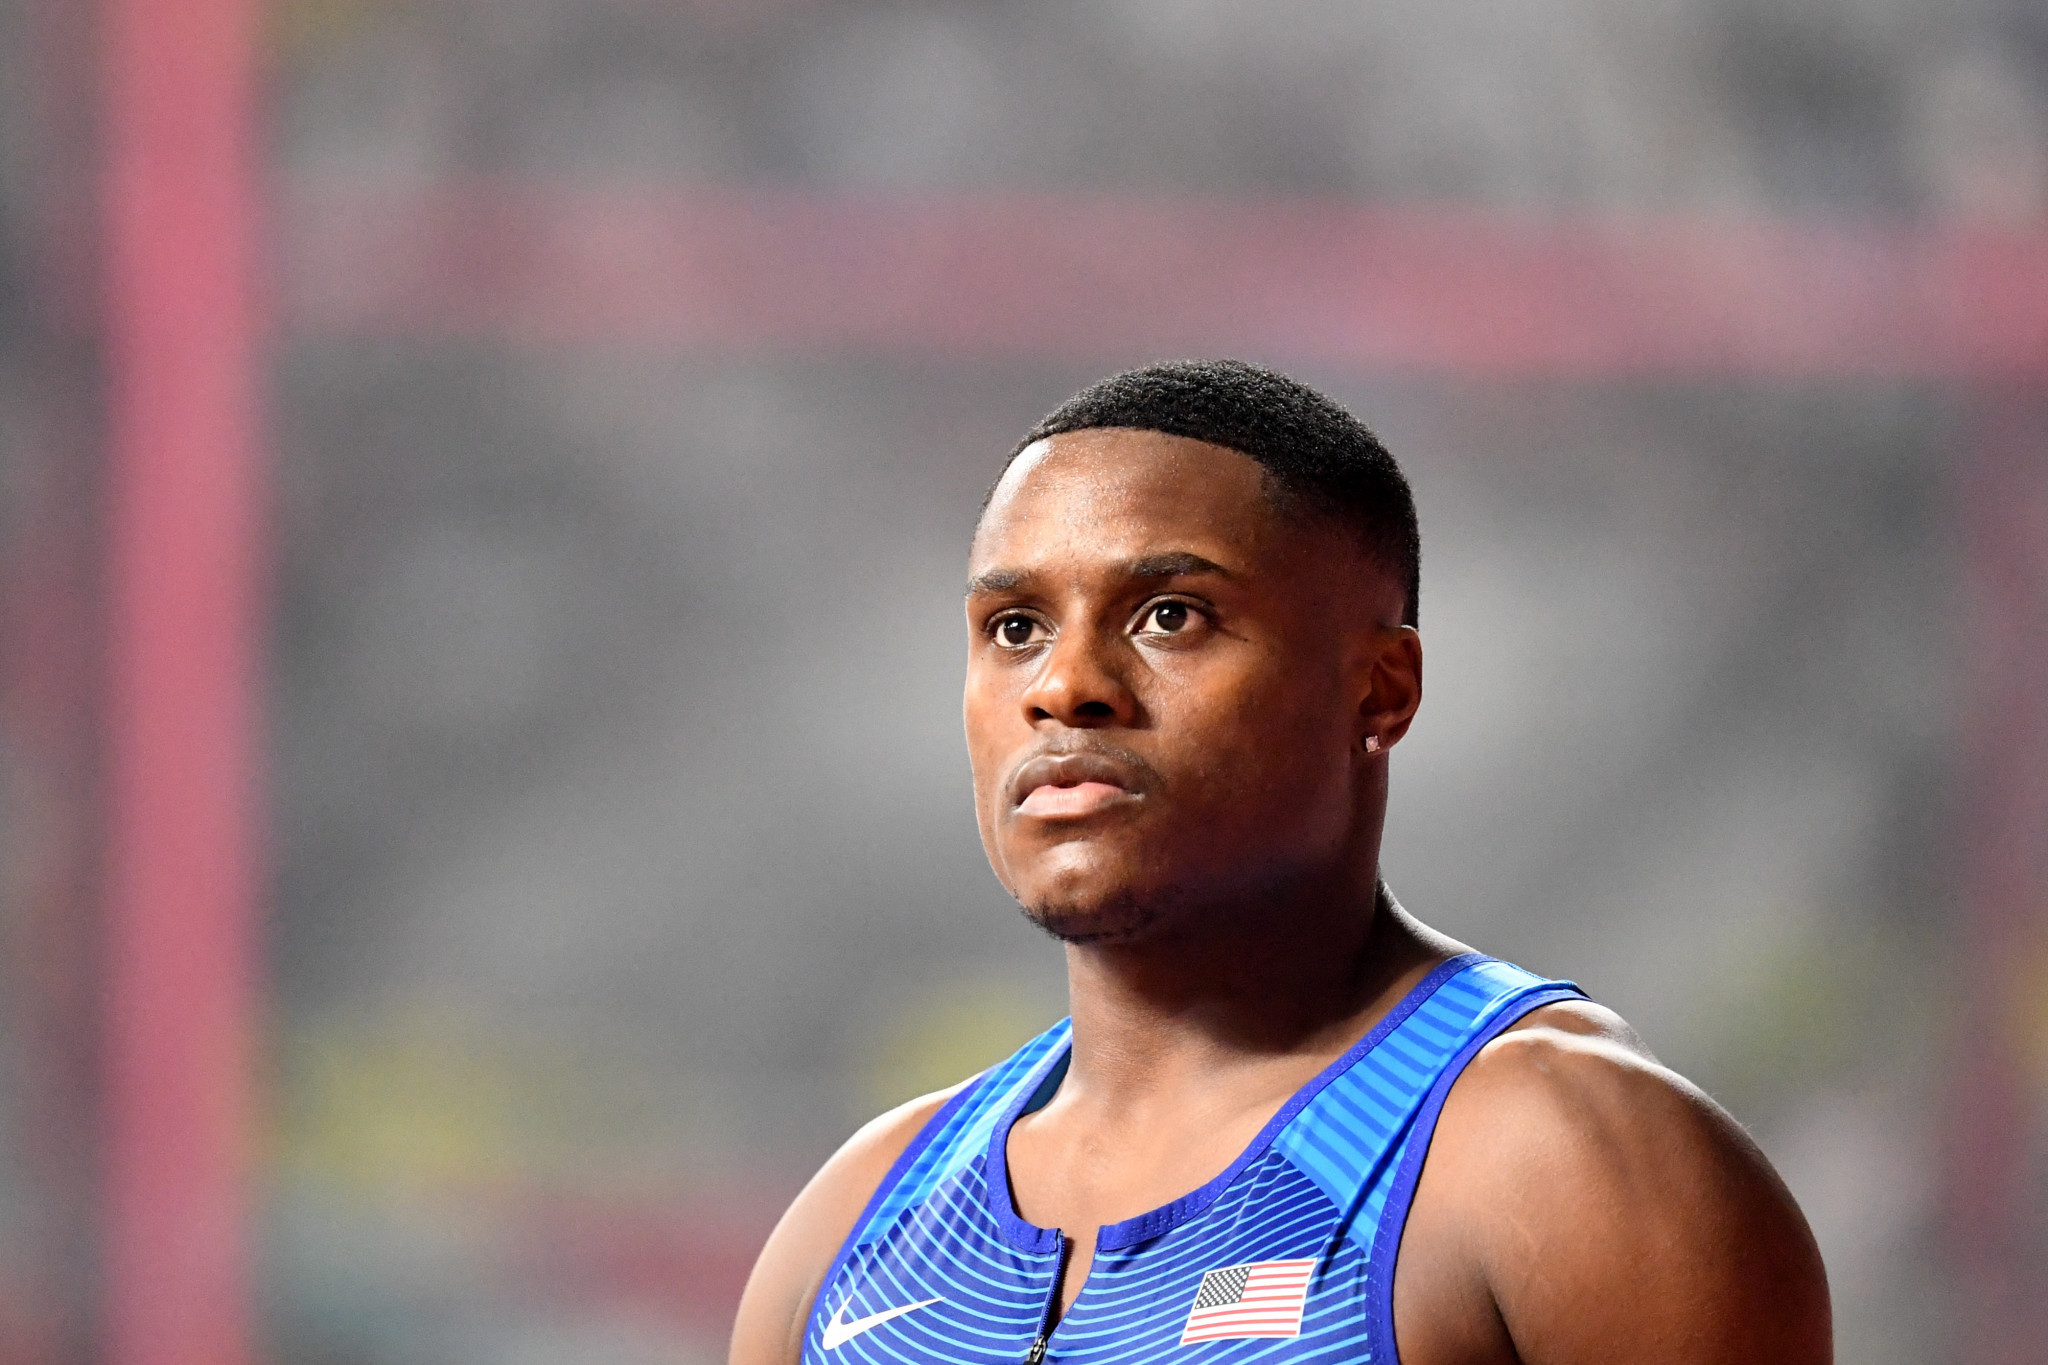 Christian Coleman will miss out on Tokyo 2020 after receiving a two-year suspension from the AIU ©Getty Images